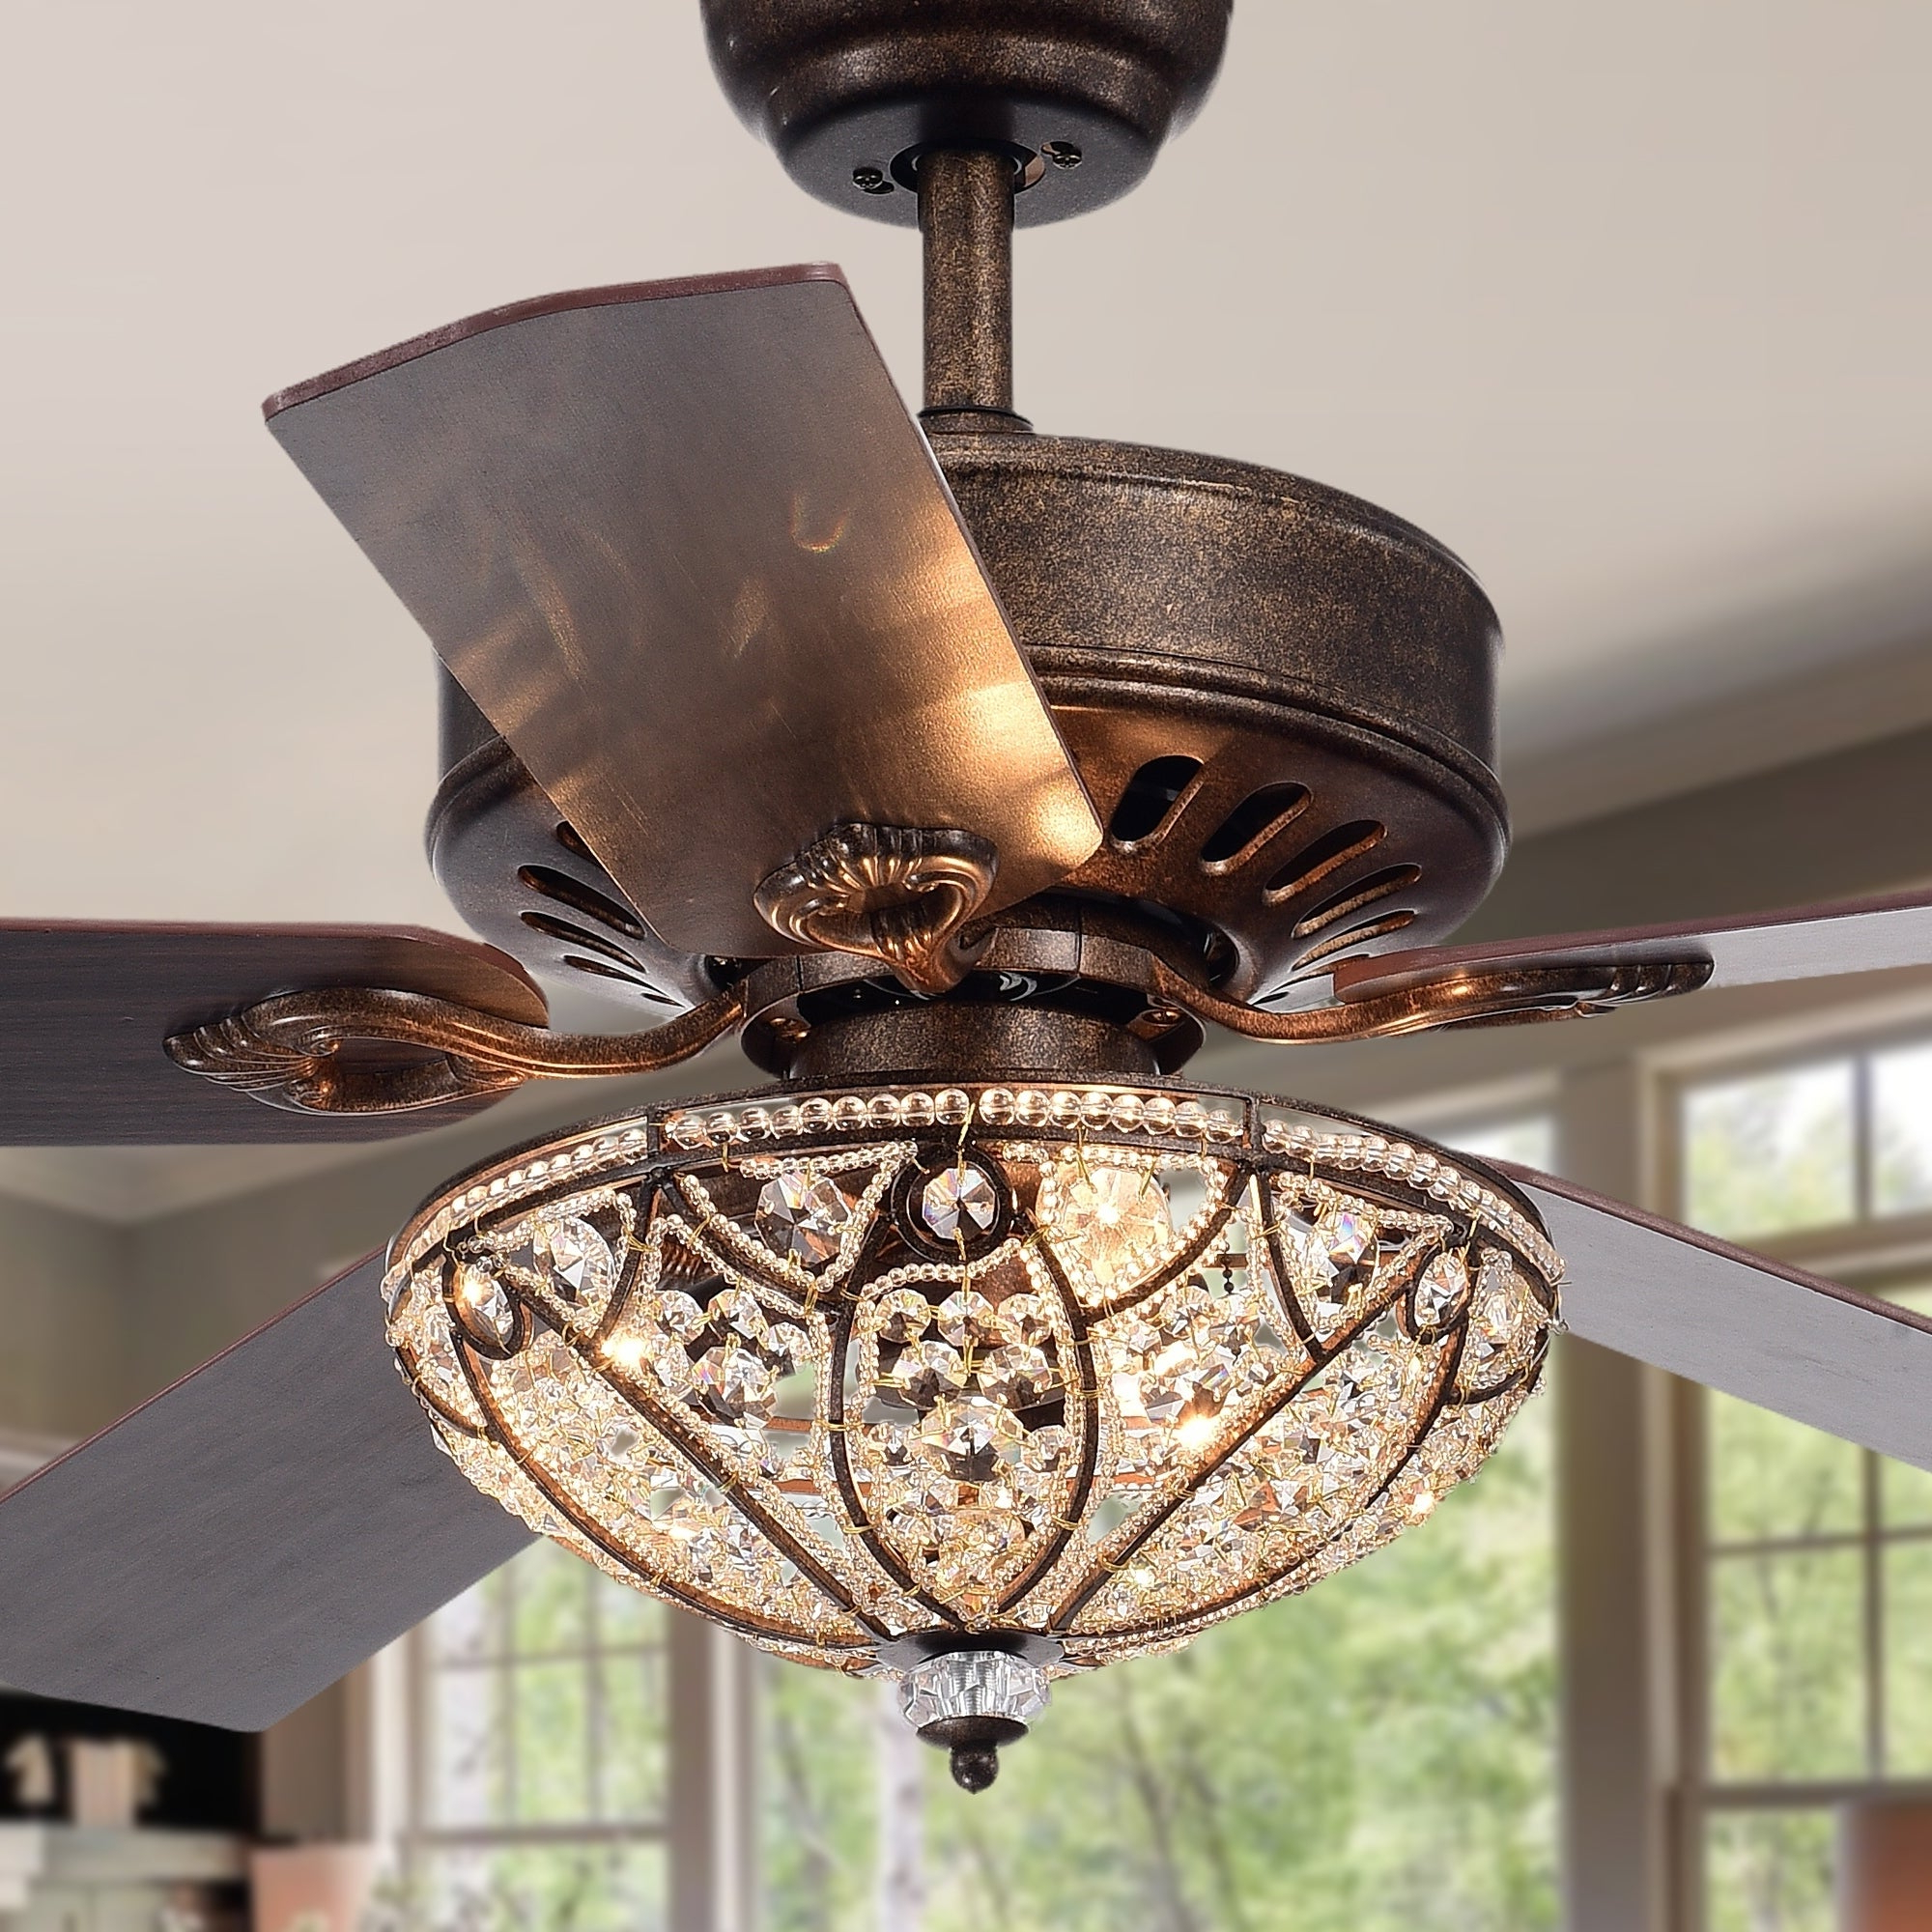 Caged Crystal 5 Blade Ceiling Fans With Regard To Fashionable Gliska 52 Inch 5 Blade Rustic Bronze Lighted Ceiling Fans W Crystal Shade Optional Remote Control (incl 2 Color Option Blades) (View 5 of 20)